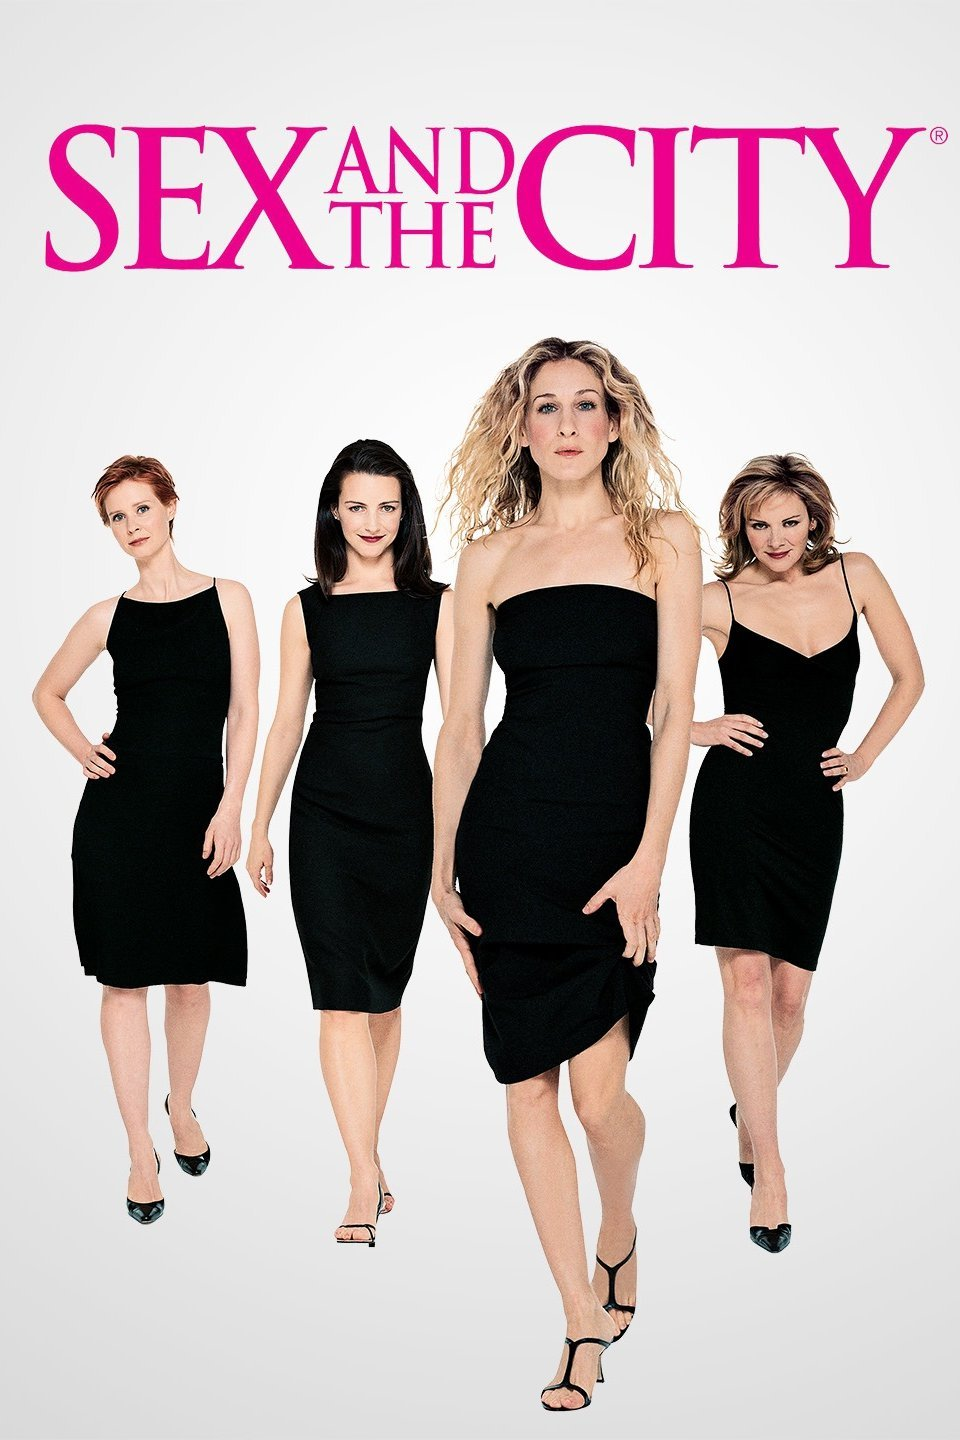 Sex and the city controversy